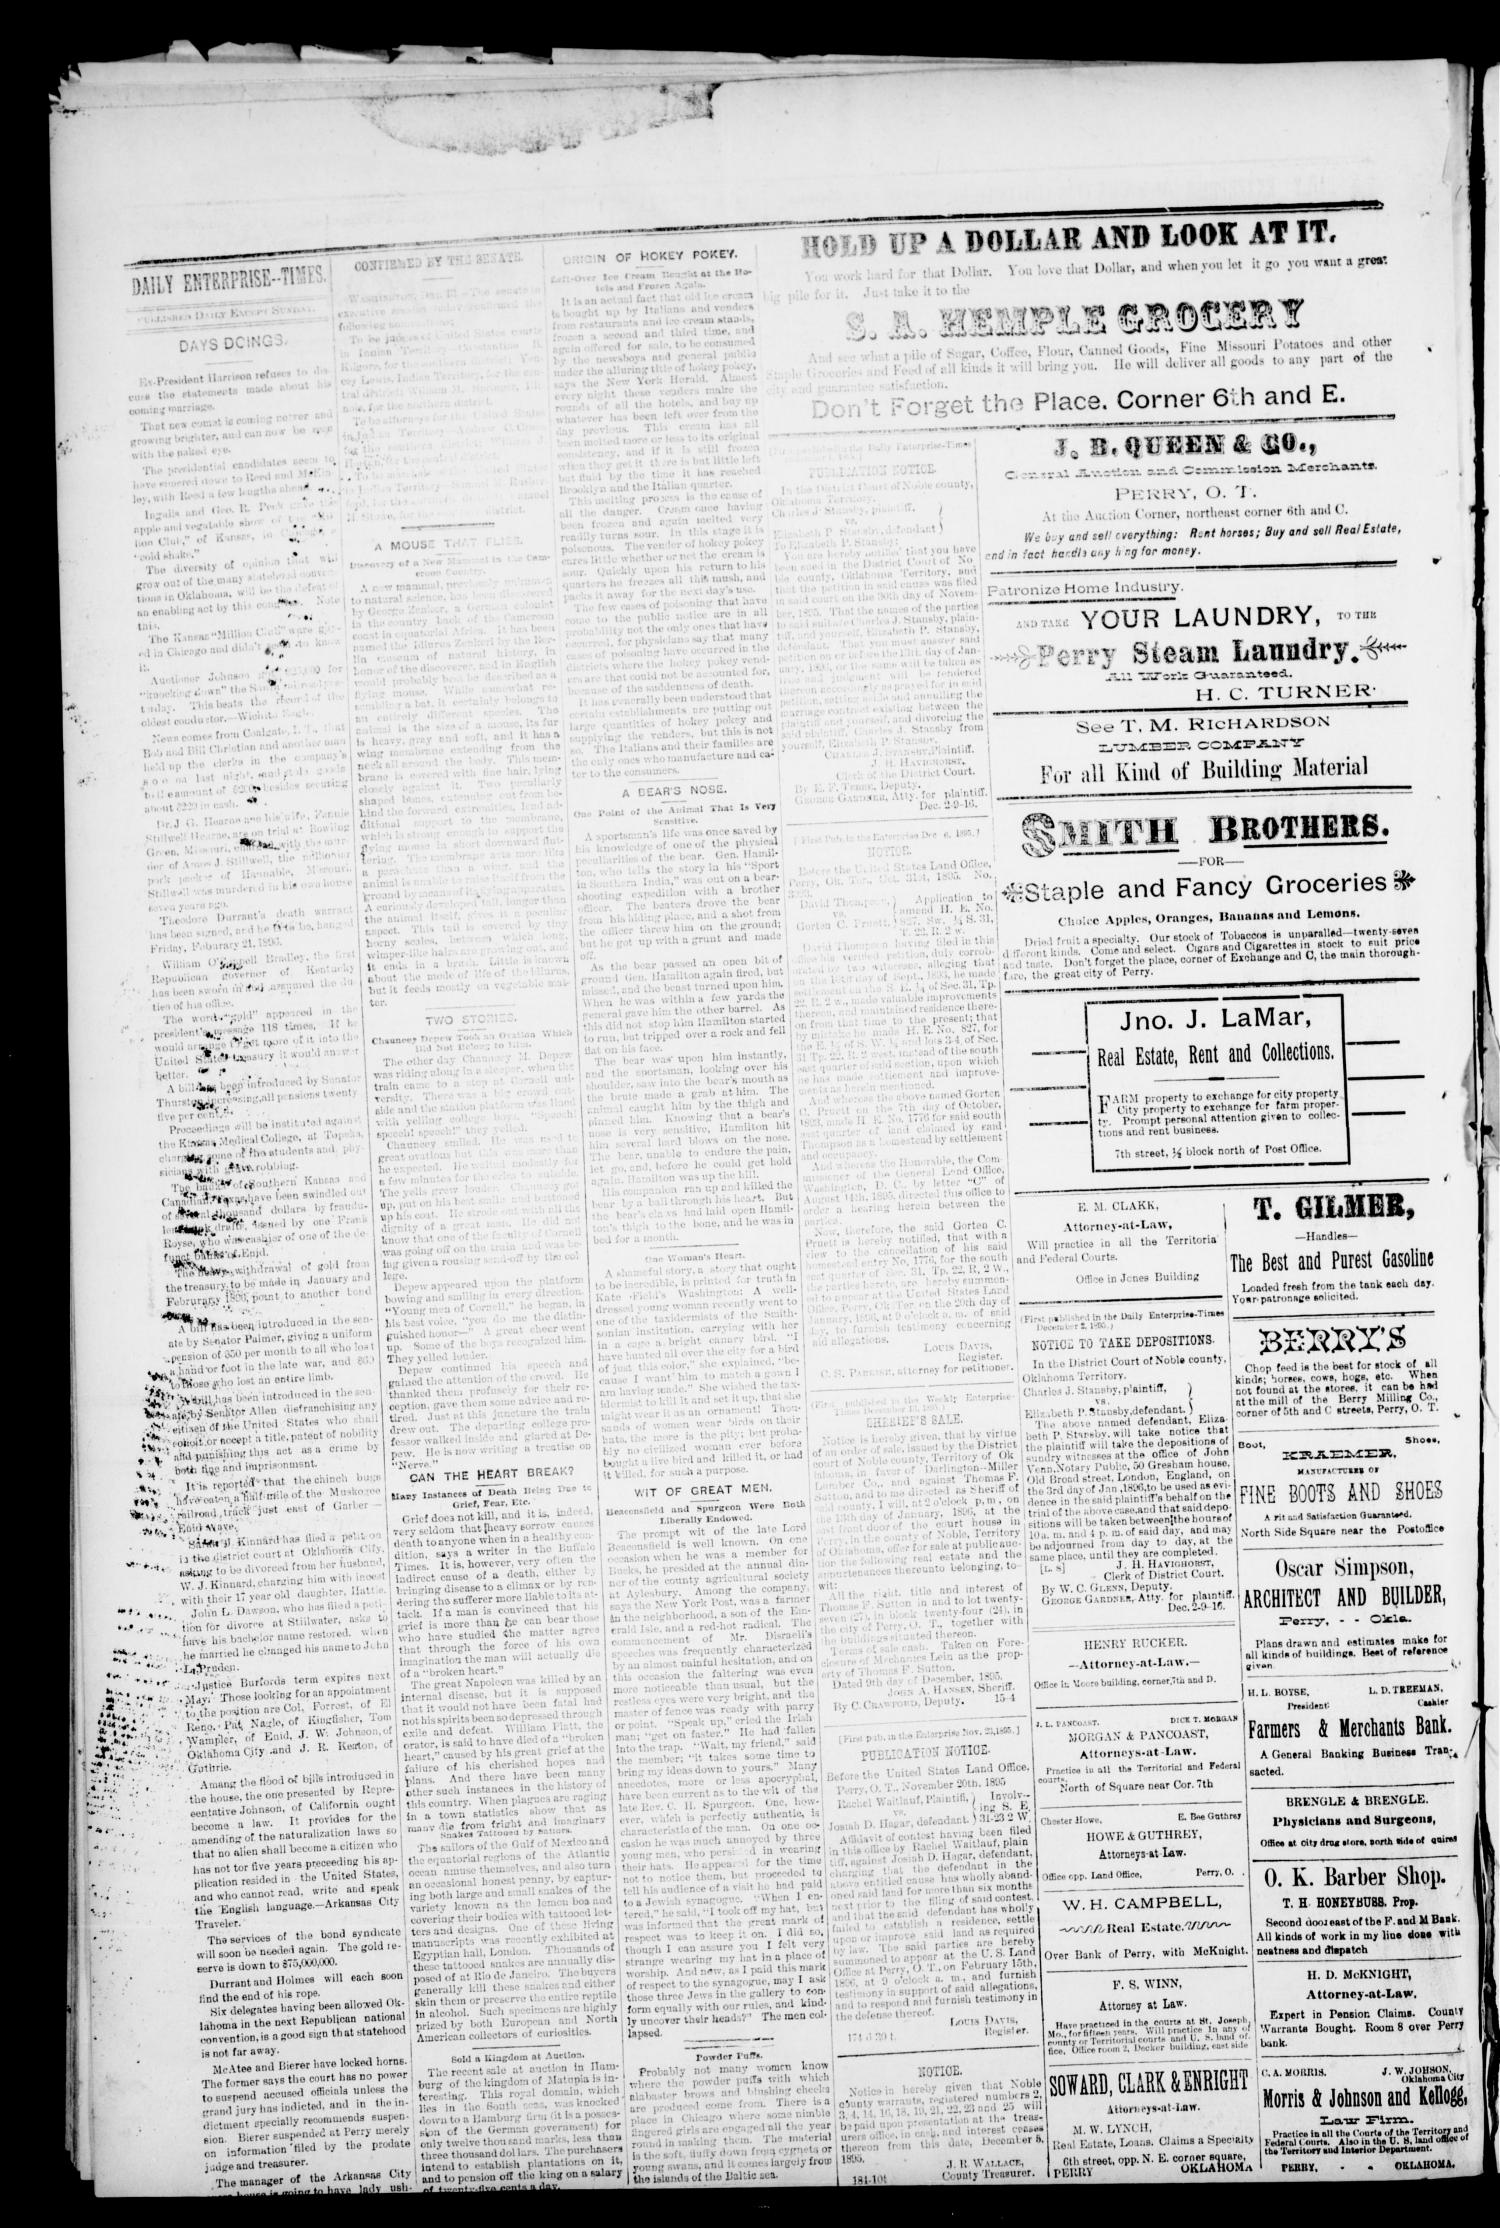 Daily Enterprise-Times. (Perry, Okla.), Vol. 1, No. 192, Ed. 1 Saturday, December 14, 1895                                                                                                      [Sequence #]: 4 of 4